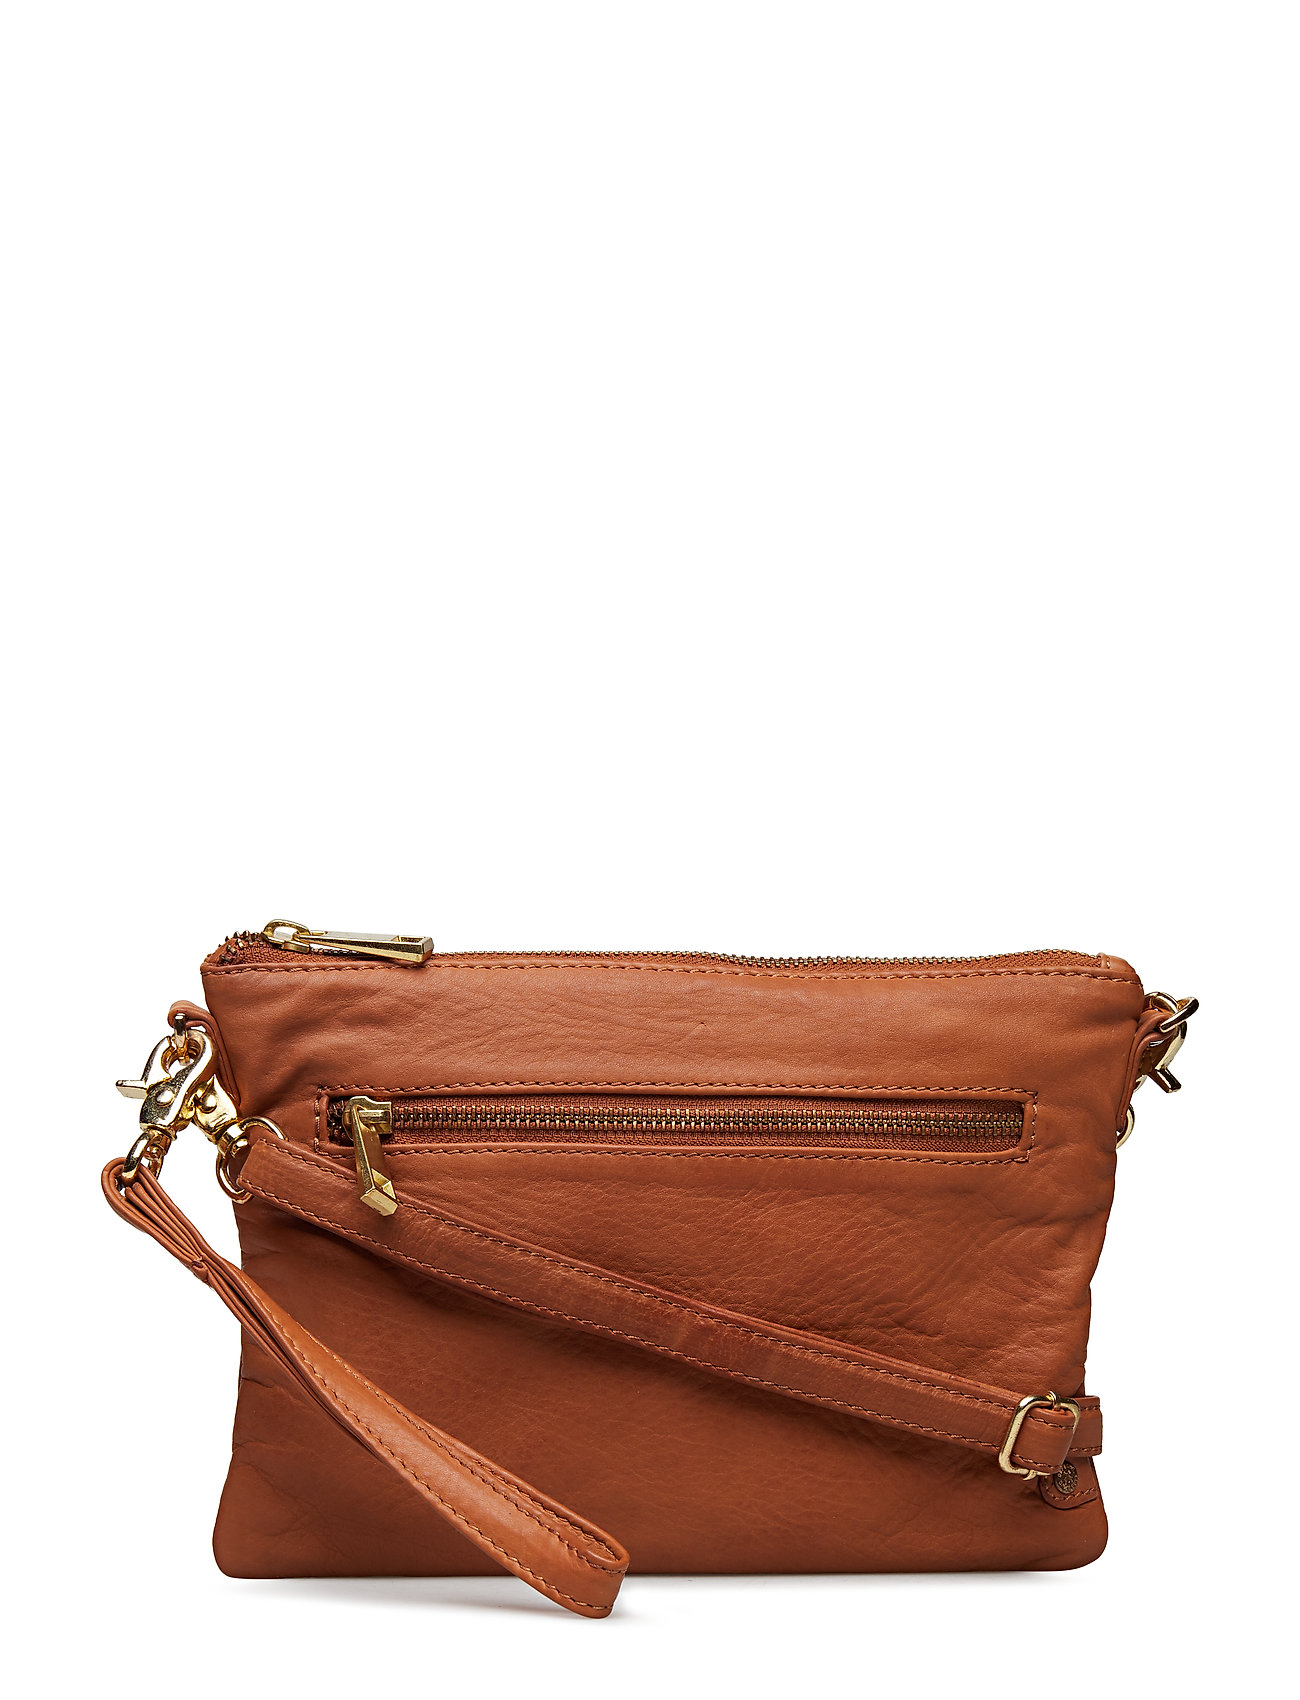 Image of Small Bag / Clutch Bags Small Shoulder Bags/crossbody Bags Brun DEPECHE (3113430739)